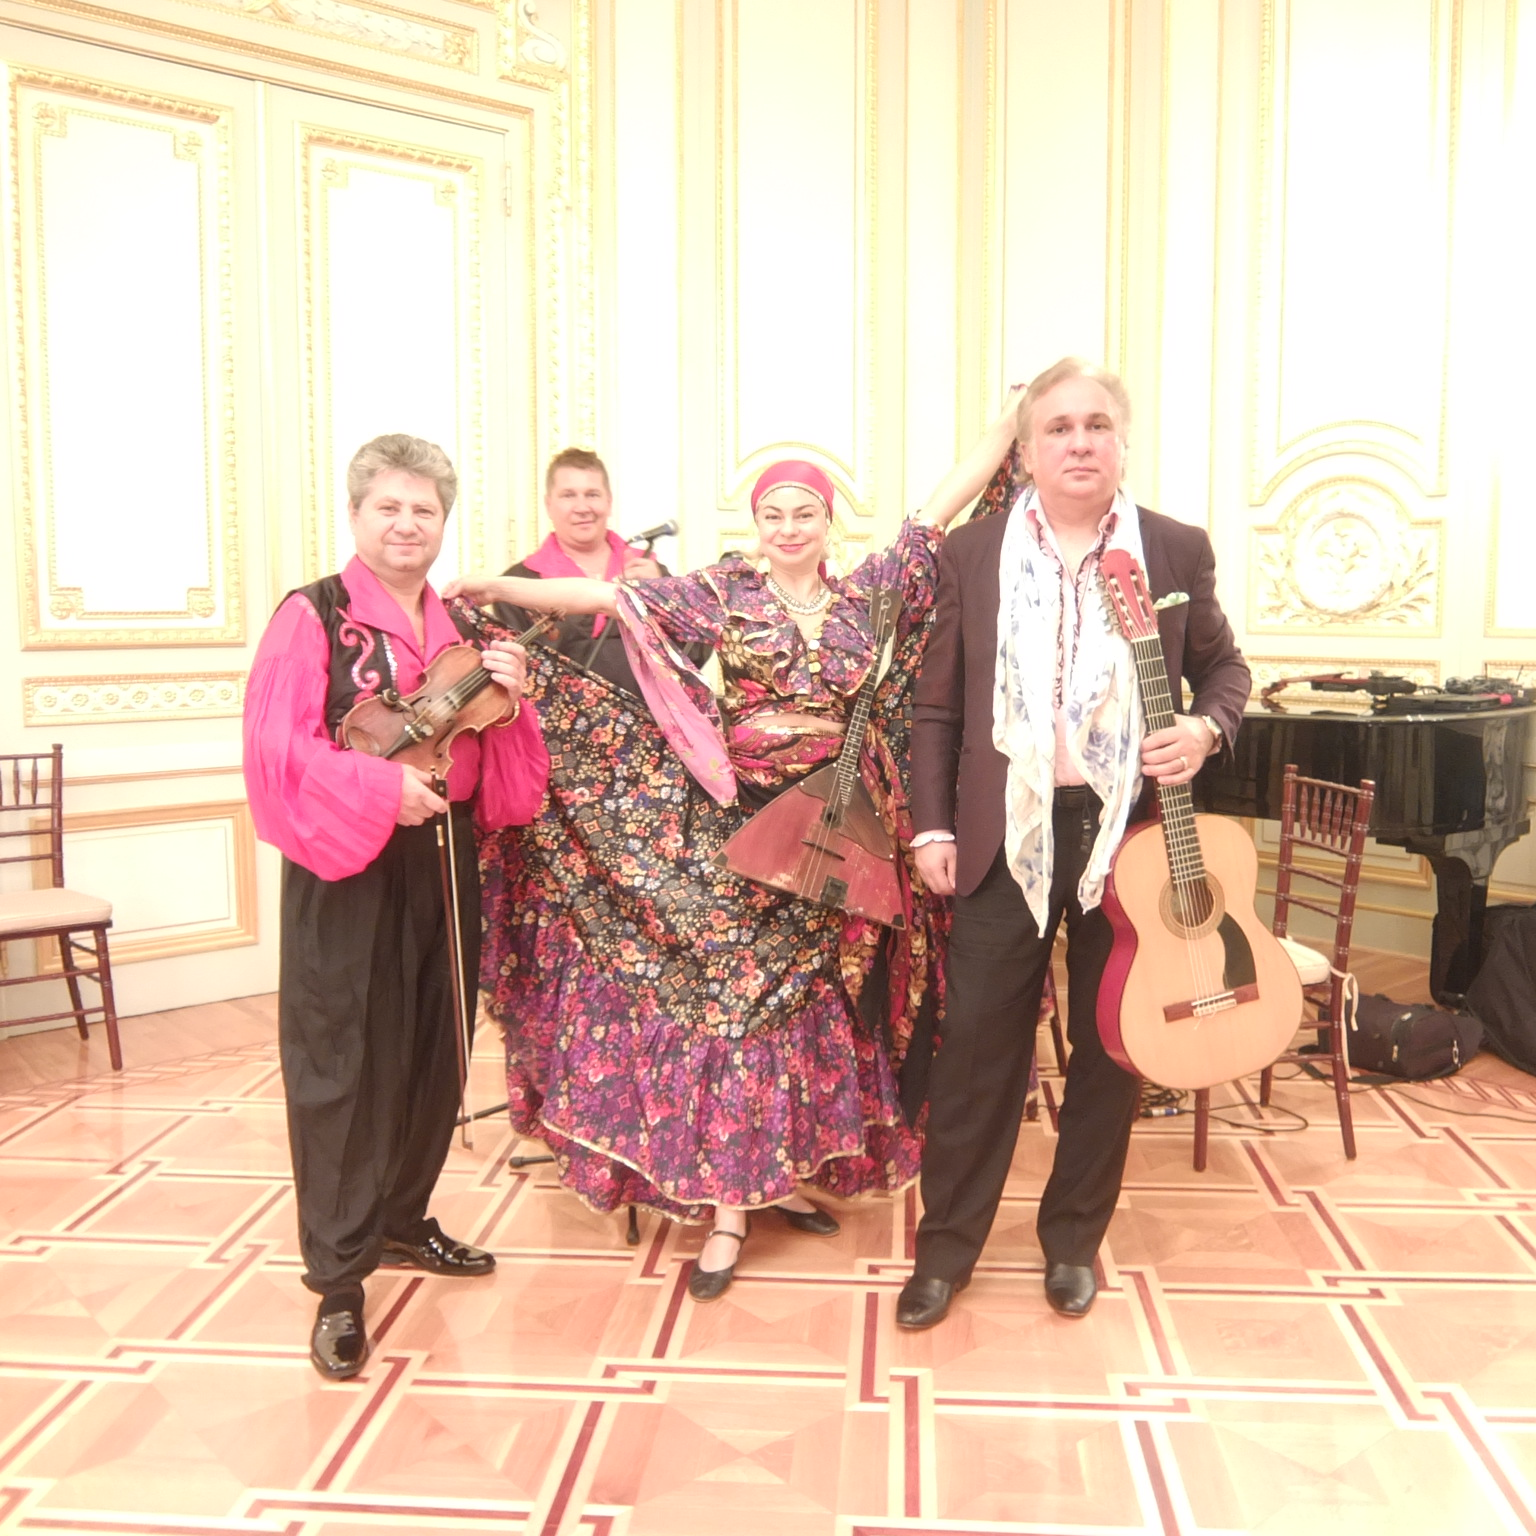 Gypsy song and music ensemble